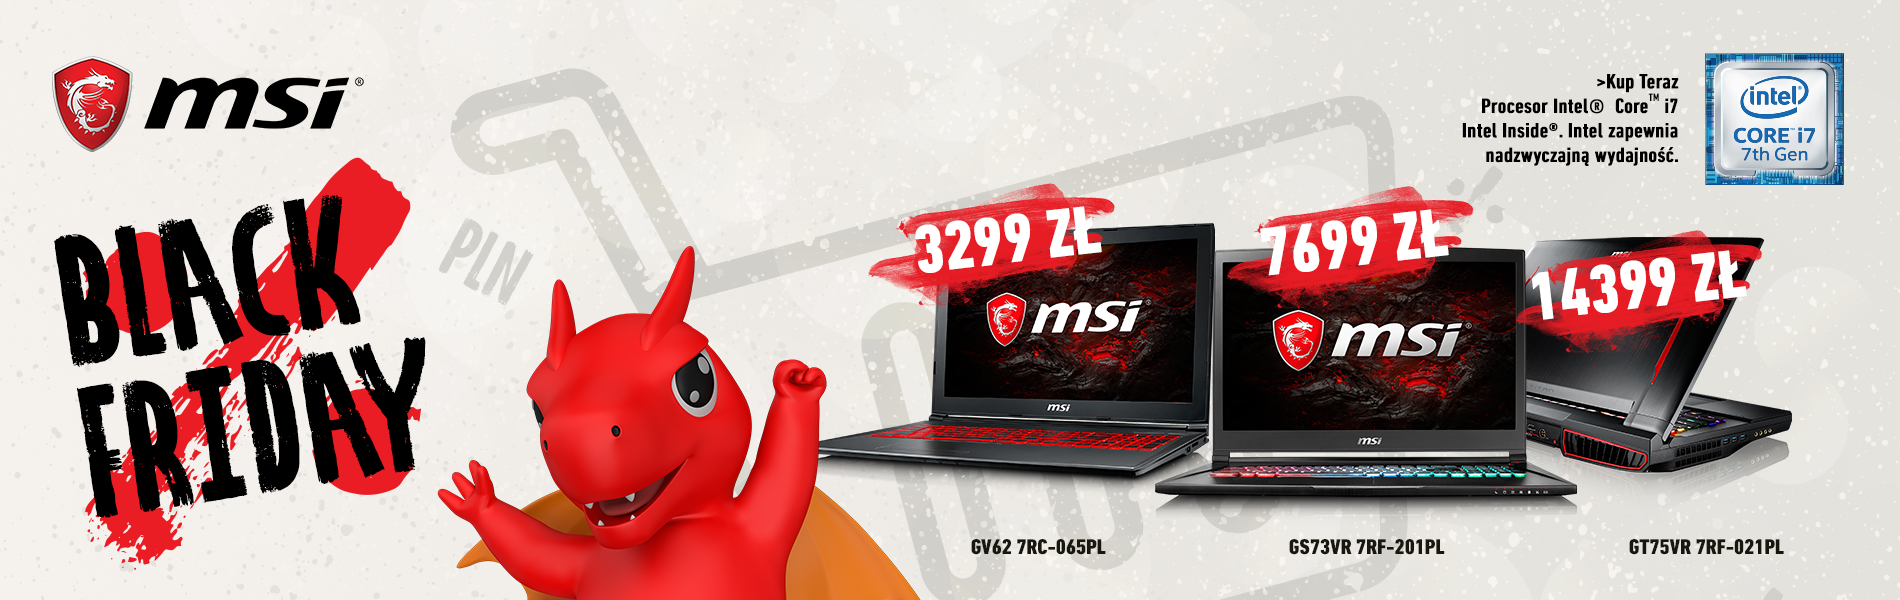 Msi-bf-nb-1900x600-ceny.png